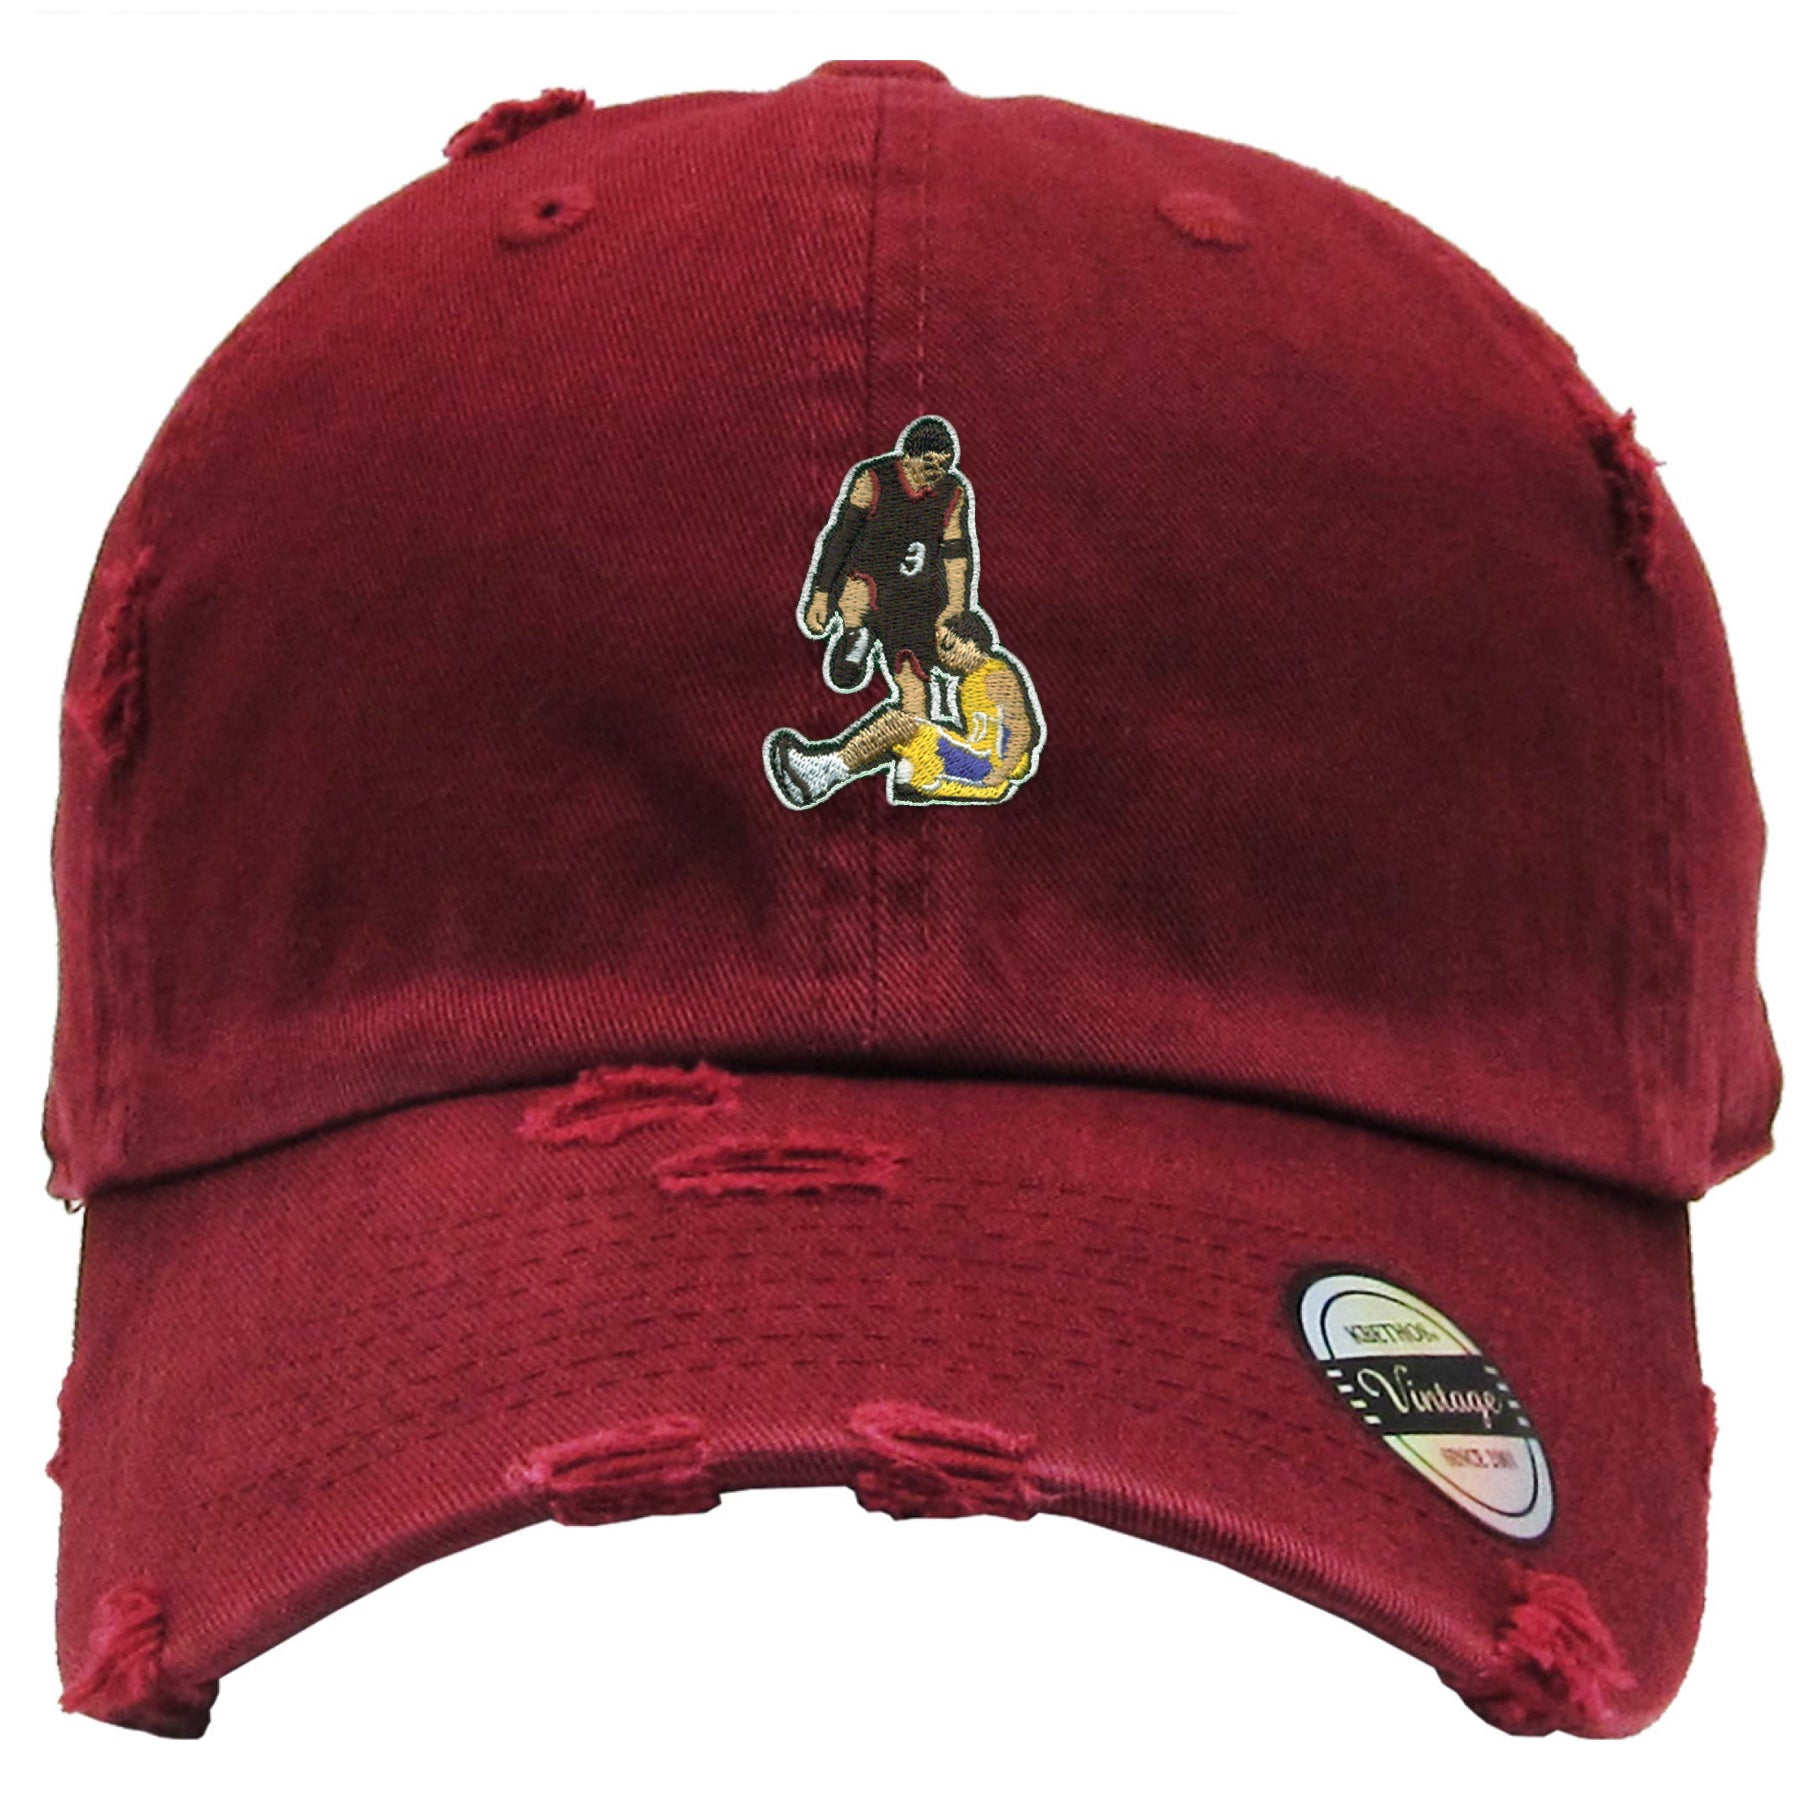 5e2698eec3351 on the front of the Allen Iverson maroon distressed vintage dad hat there  is an image